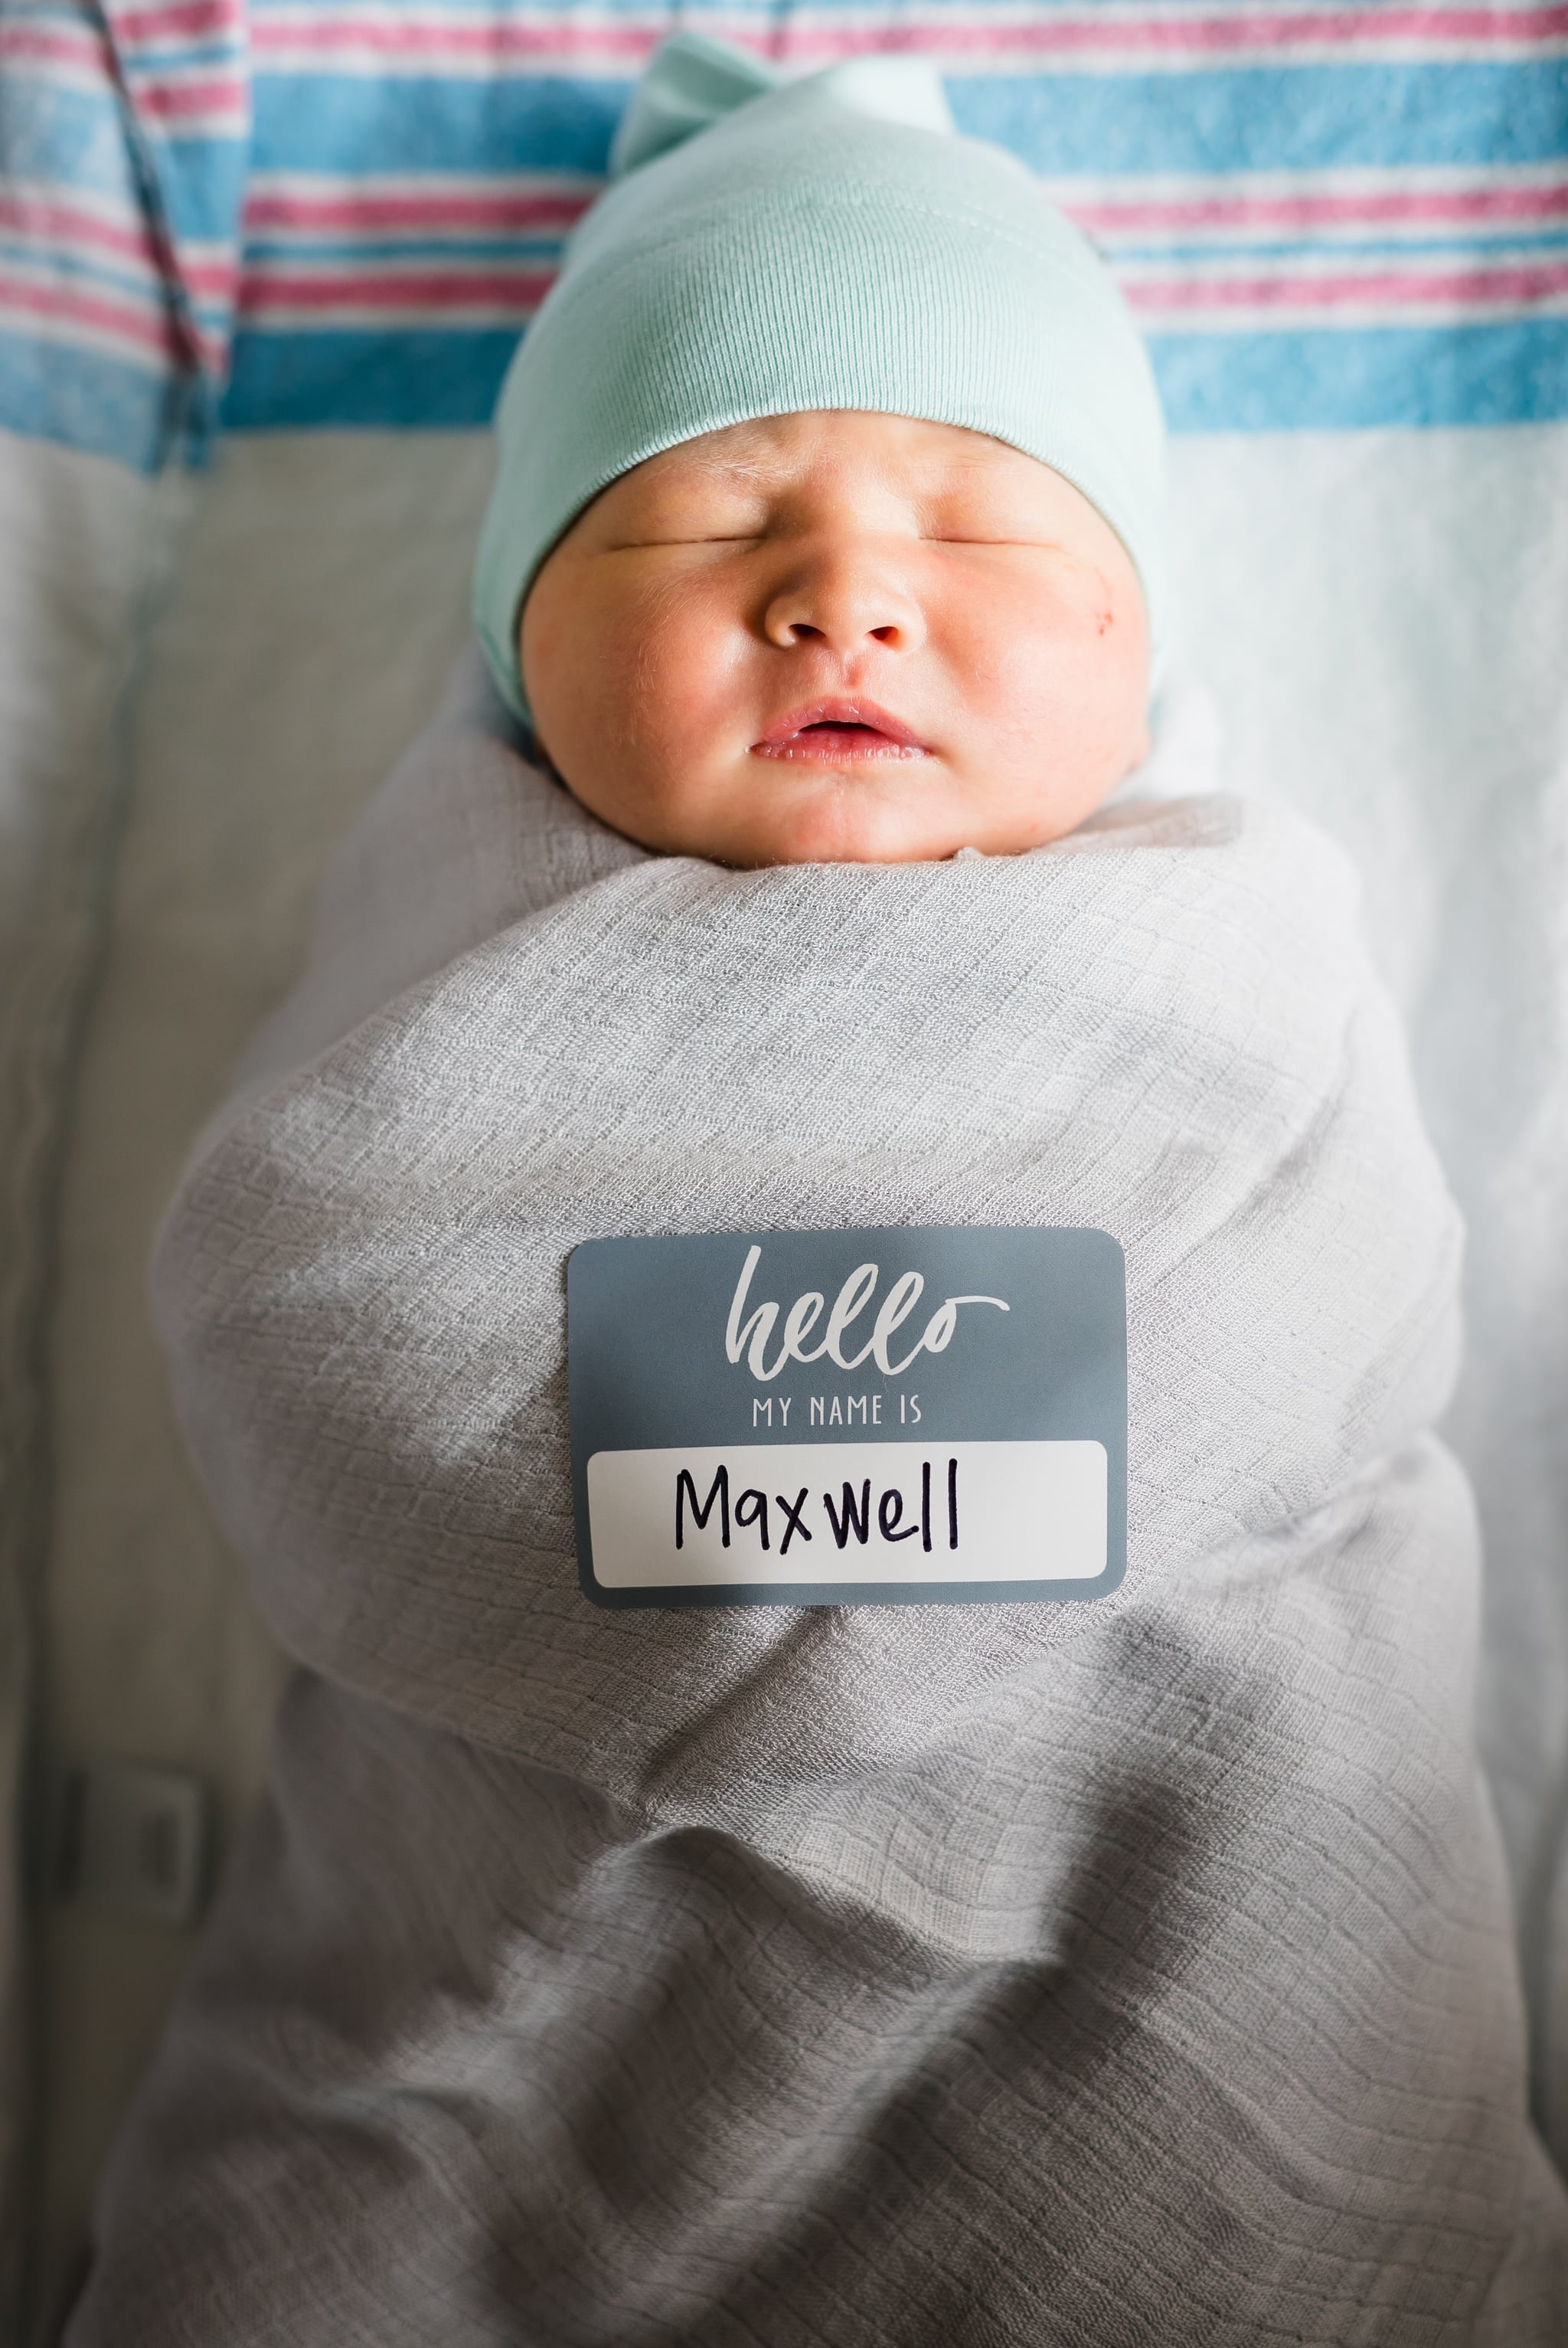 Based on This Year's Trends, These Are Going to Be the Most Popular Baby Names of 2020